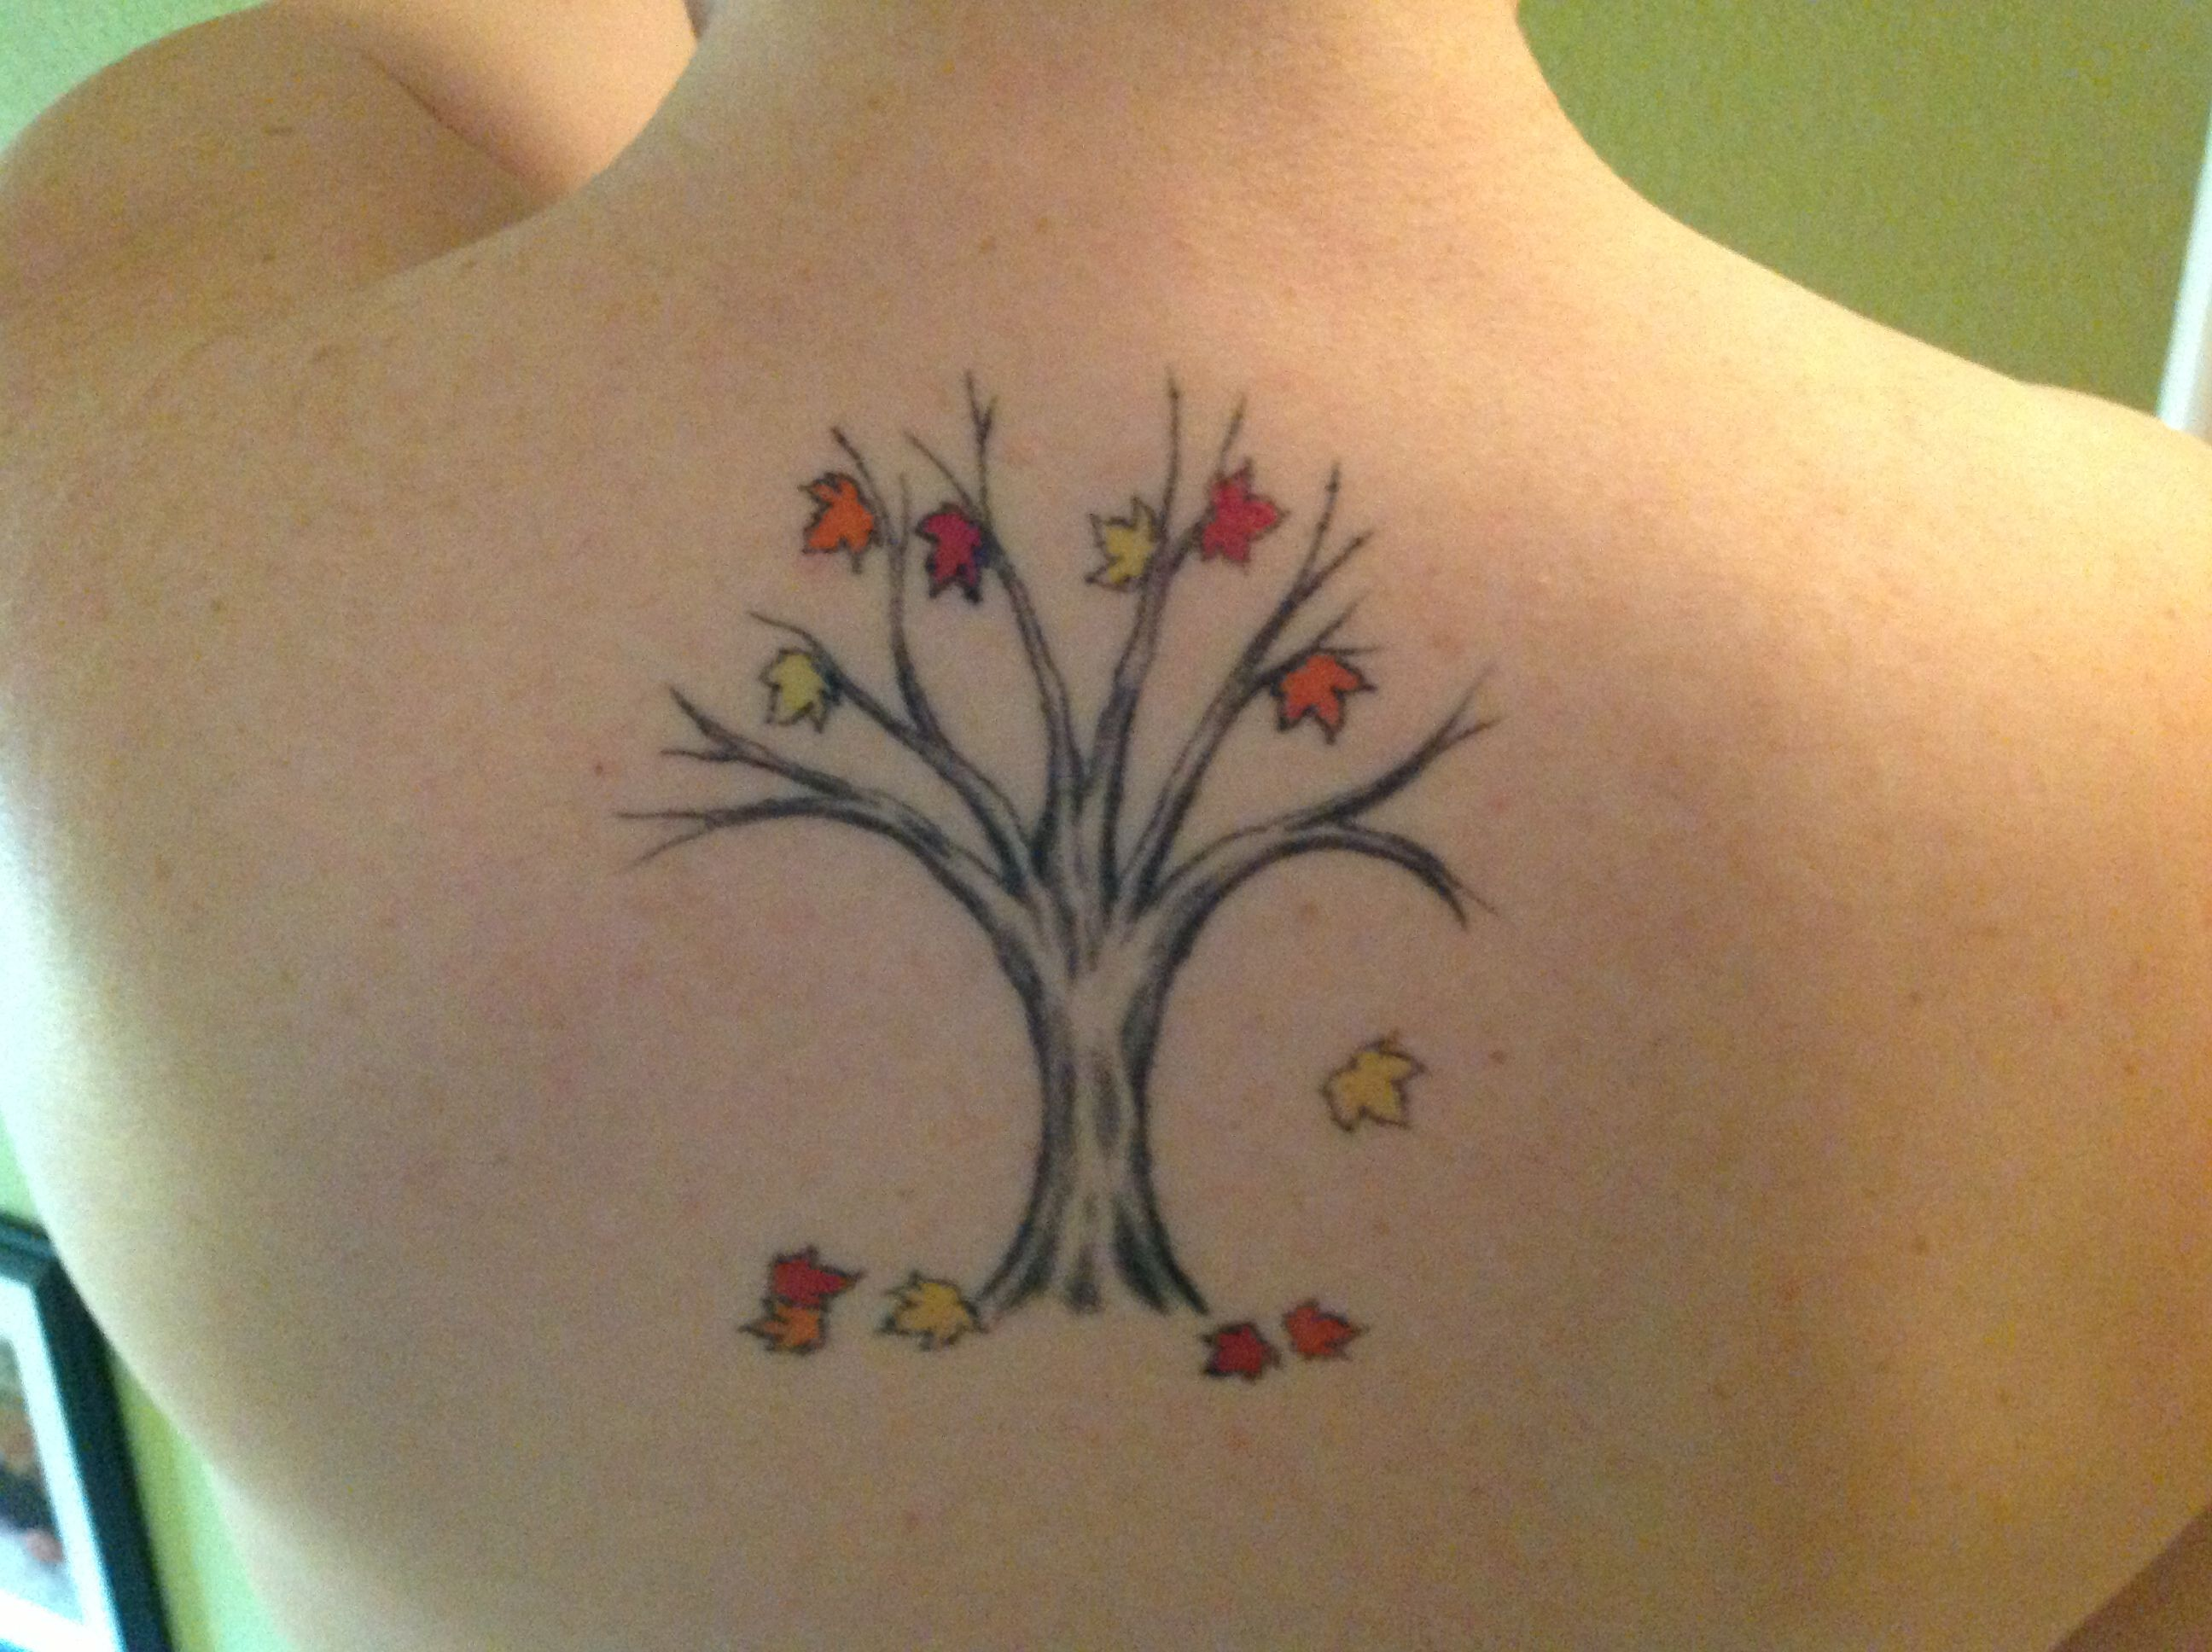 My Family Tree tattoo. The leaves represent my family ...